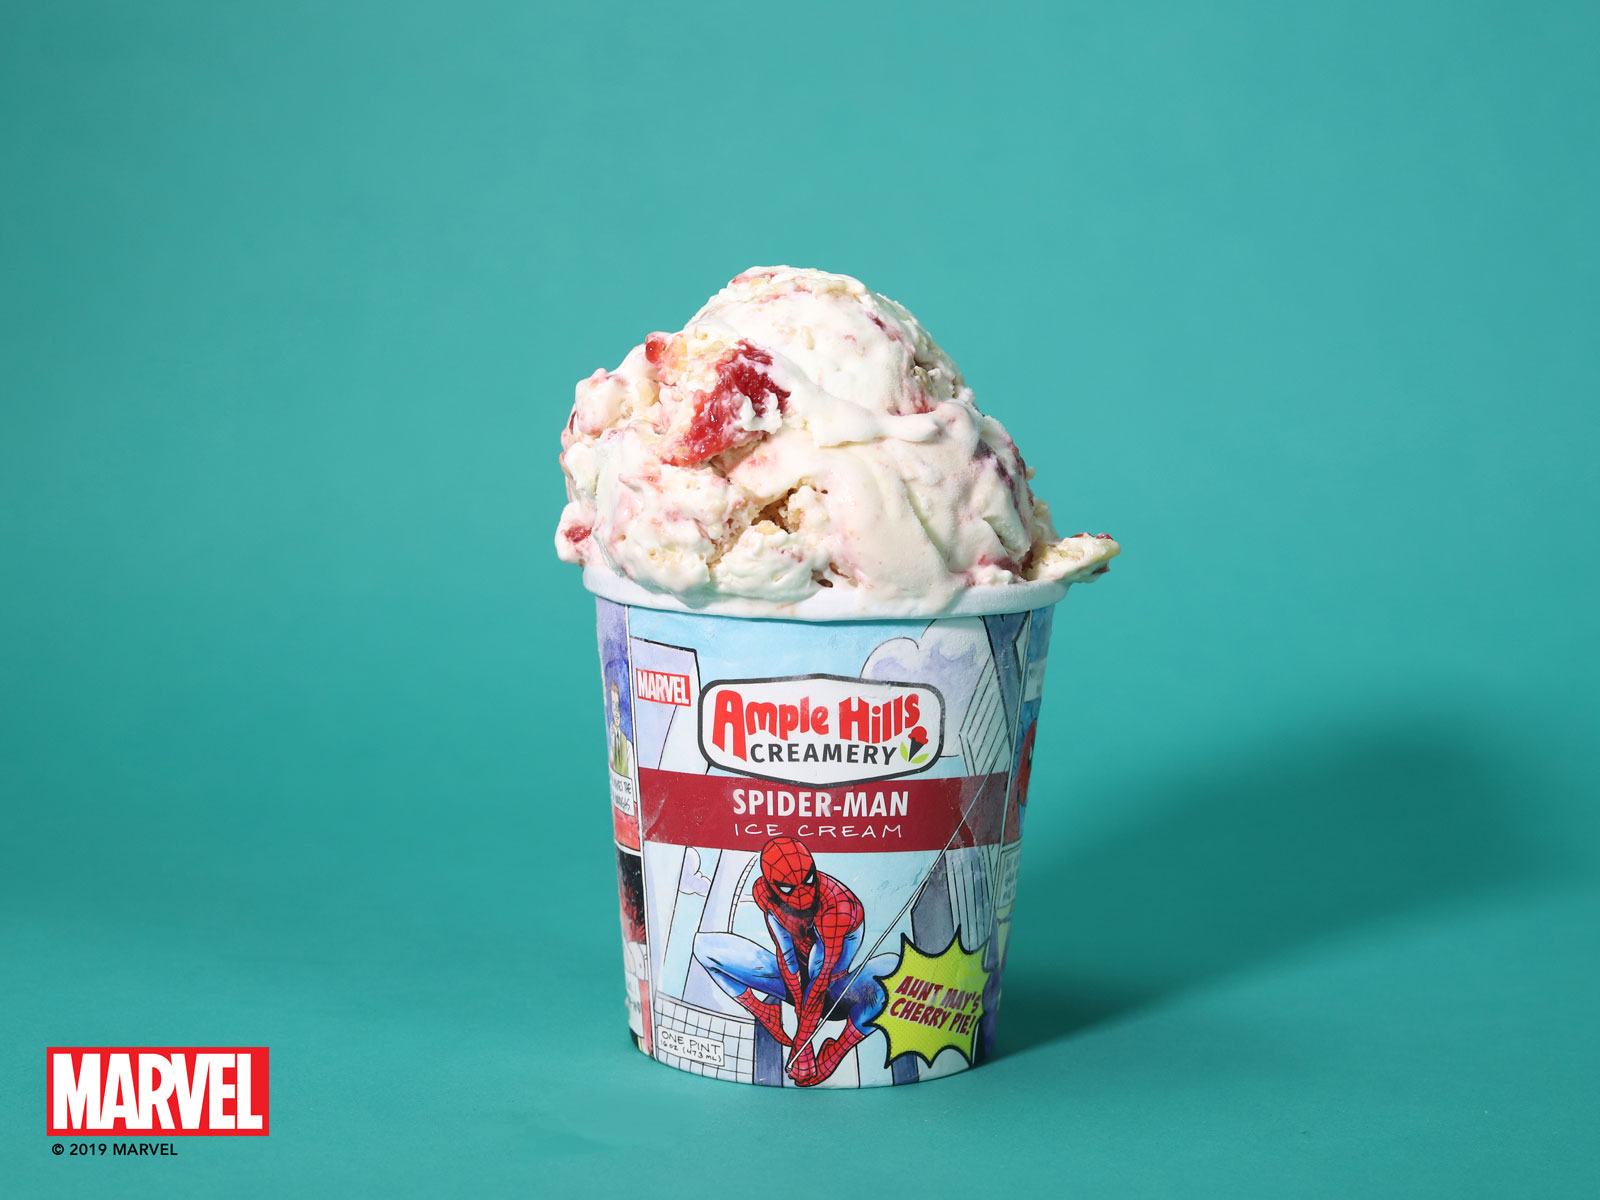 Ample Hills Debuts Captain America, Black Panther, and Spider-Man Ice Cream Flavors